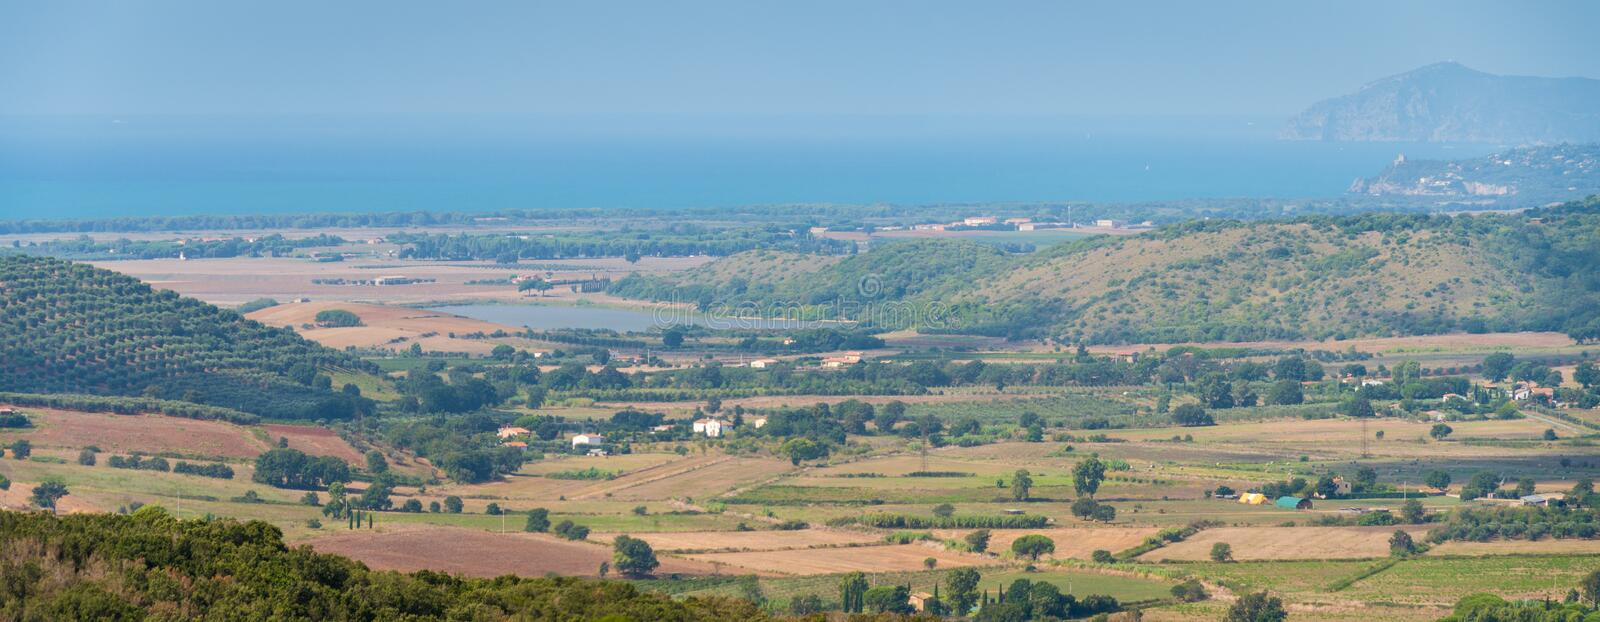 Amazing panorama with the Tuscany coastline, from the Capalbio city walls. Province of Grosseto, Italy. stock photos